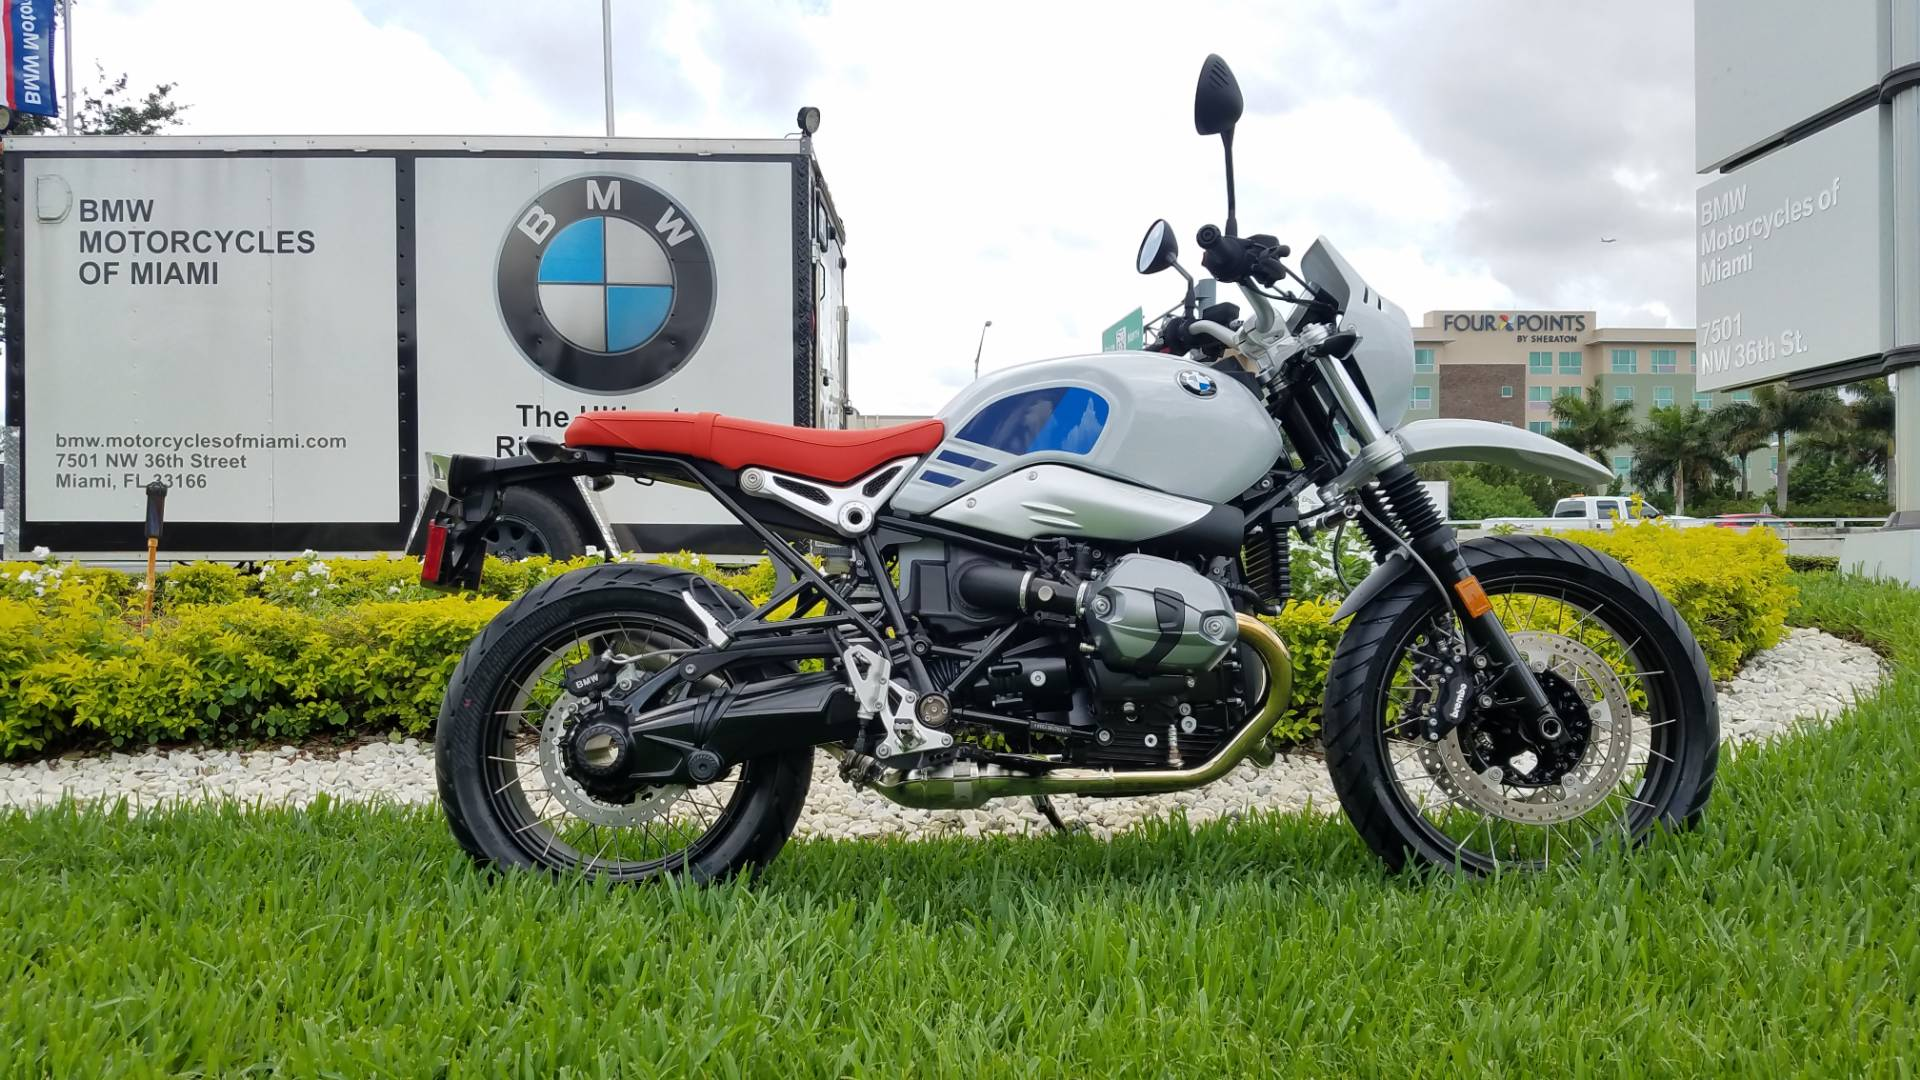 New 2018 BMW R nineT Urban GS For Sale, BMW R nineT Urban GS For Sale, BMW Motorcycle Urban, new BMW Urban GS, New BMW Motorcycle